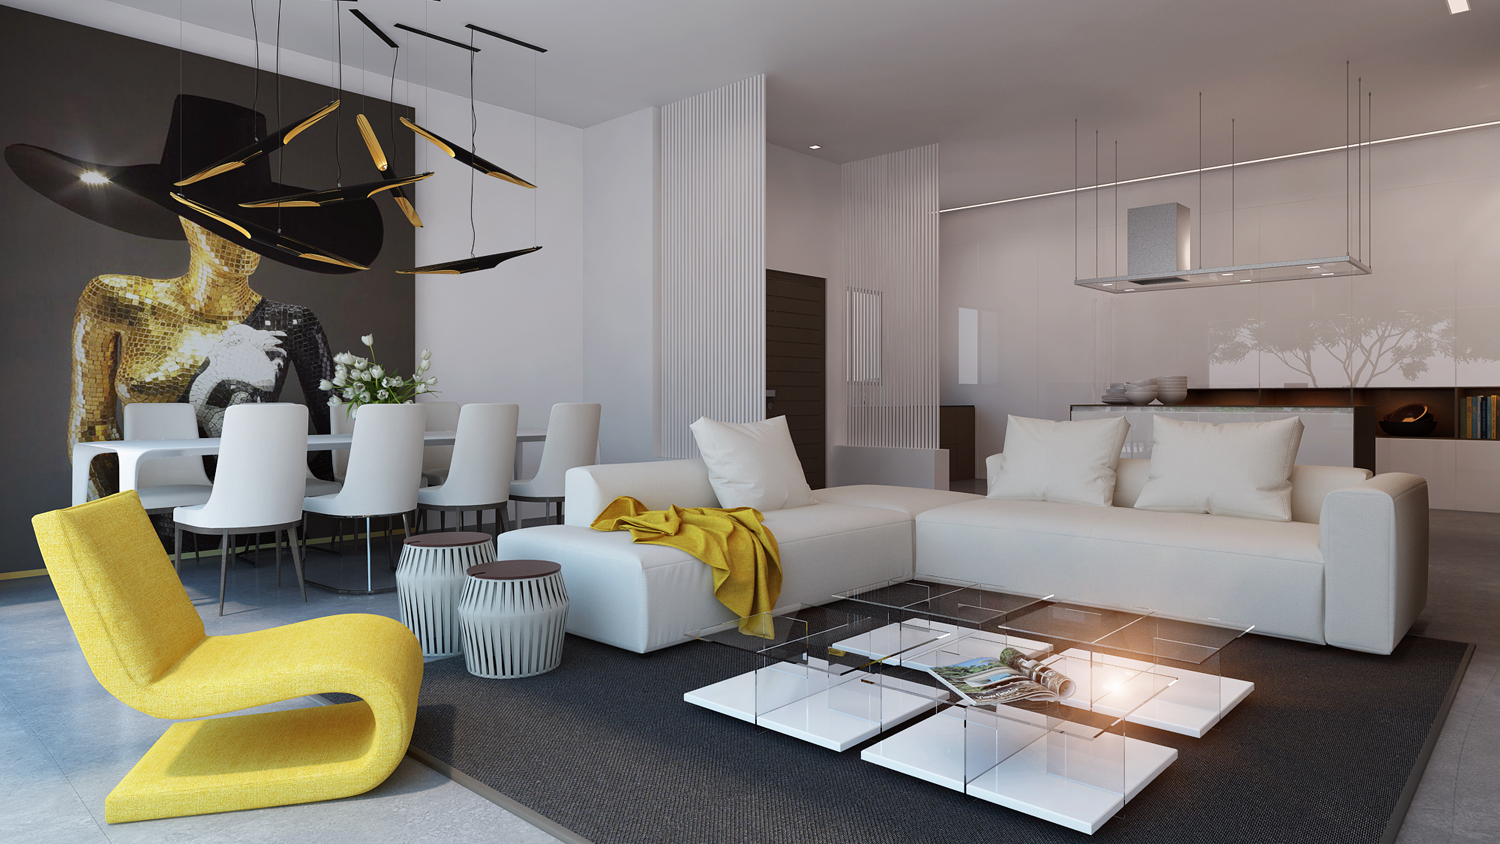 creative design ideas for living room with luxury and modern decor  - ax studio design ideas for living room